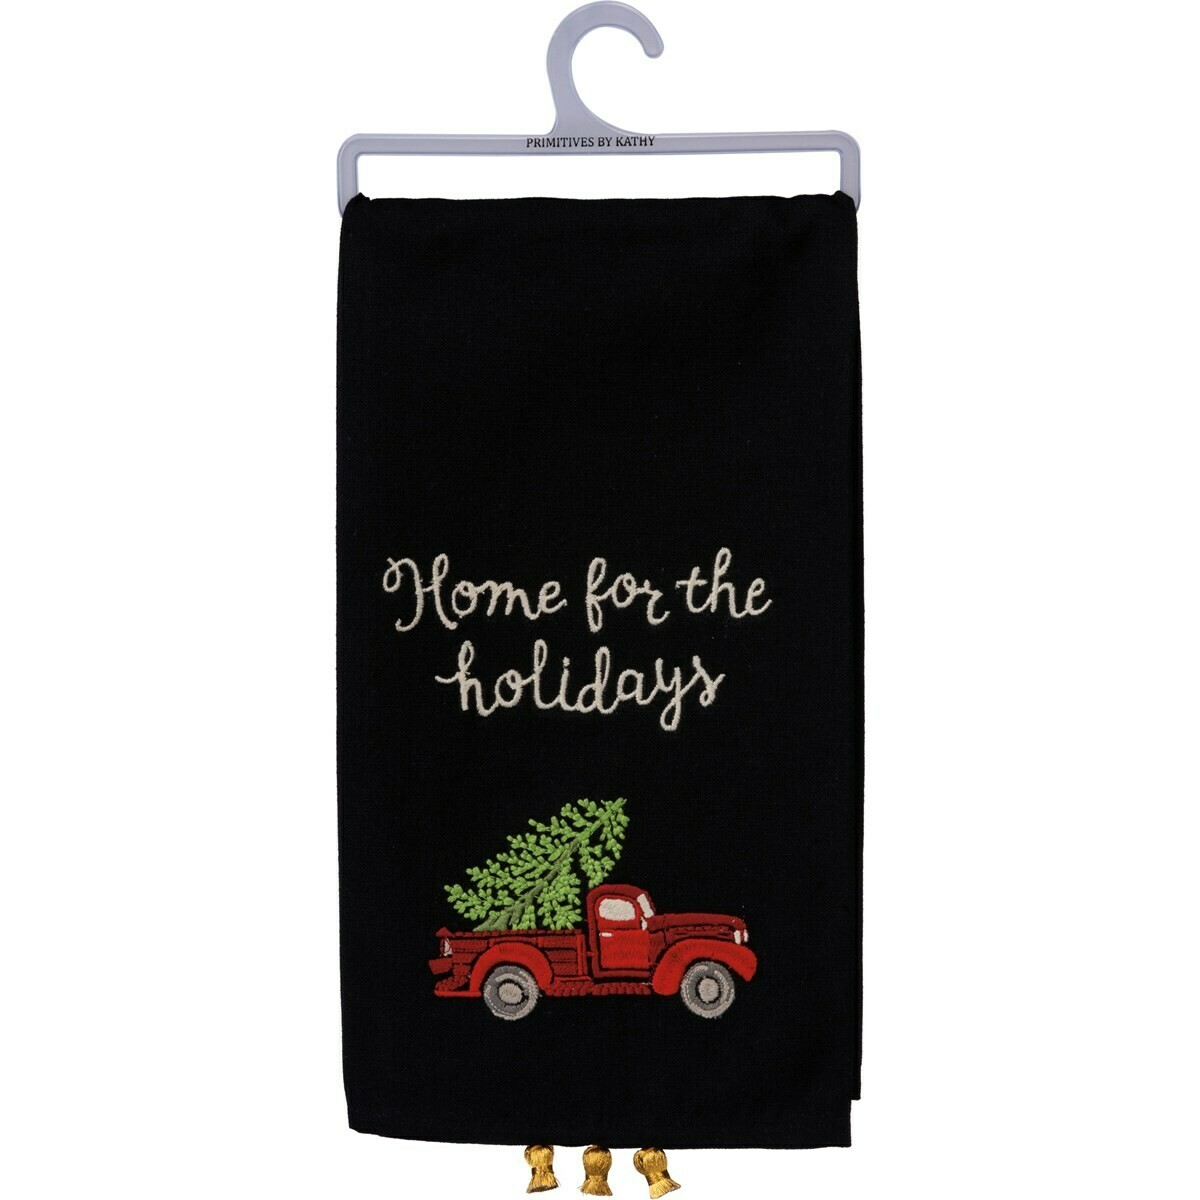 Home for the Holidays Tassel Towel